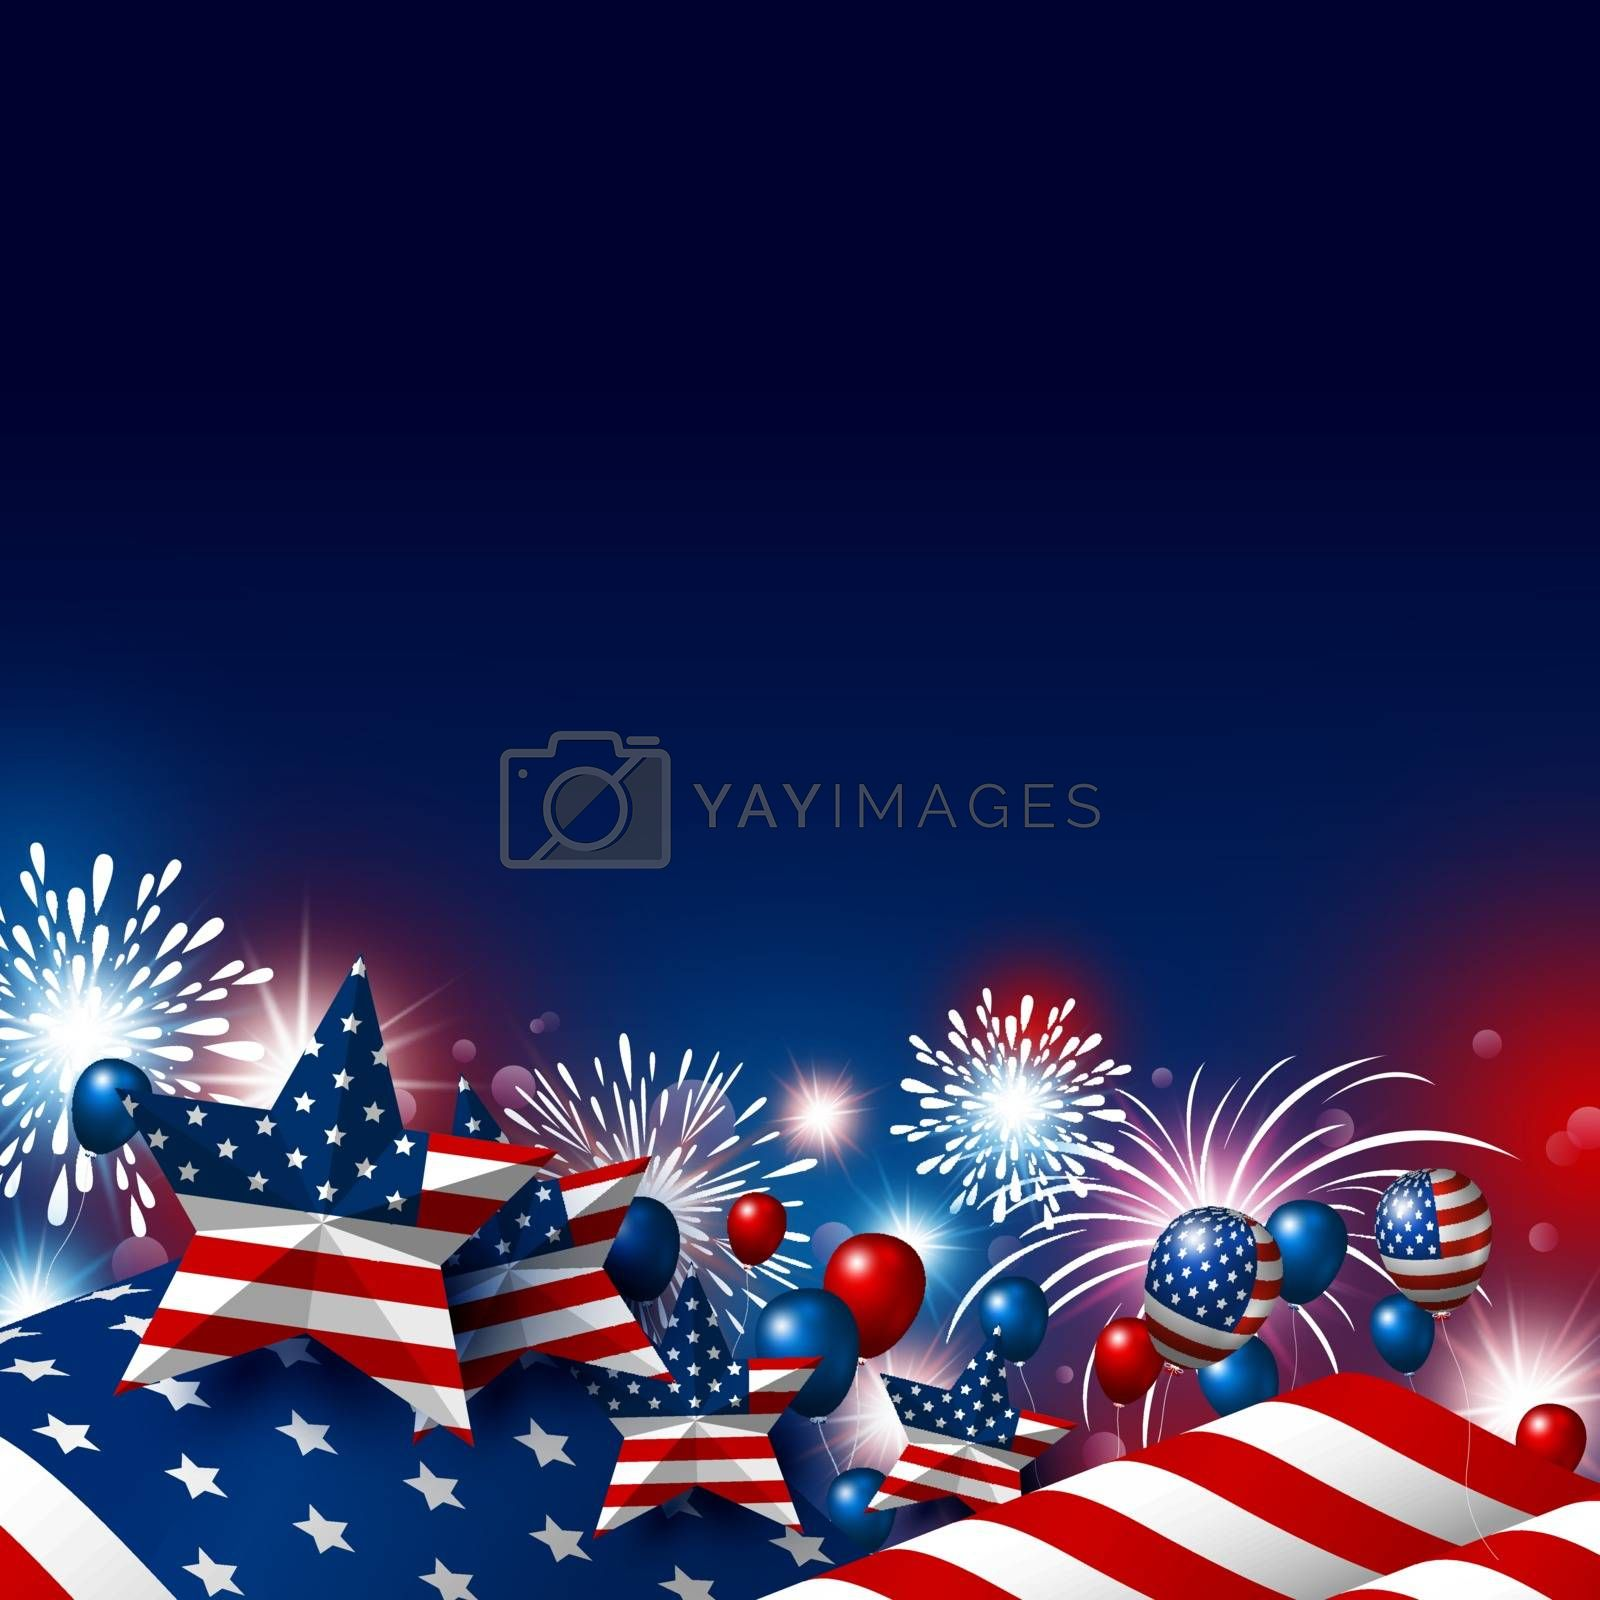 USA 4th of july happy independence day design of american flag with fireworks vector illustration